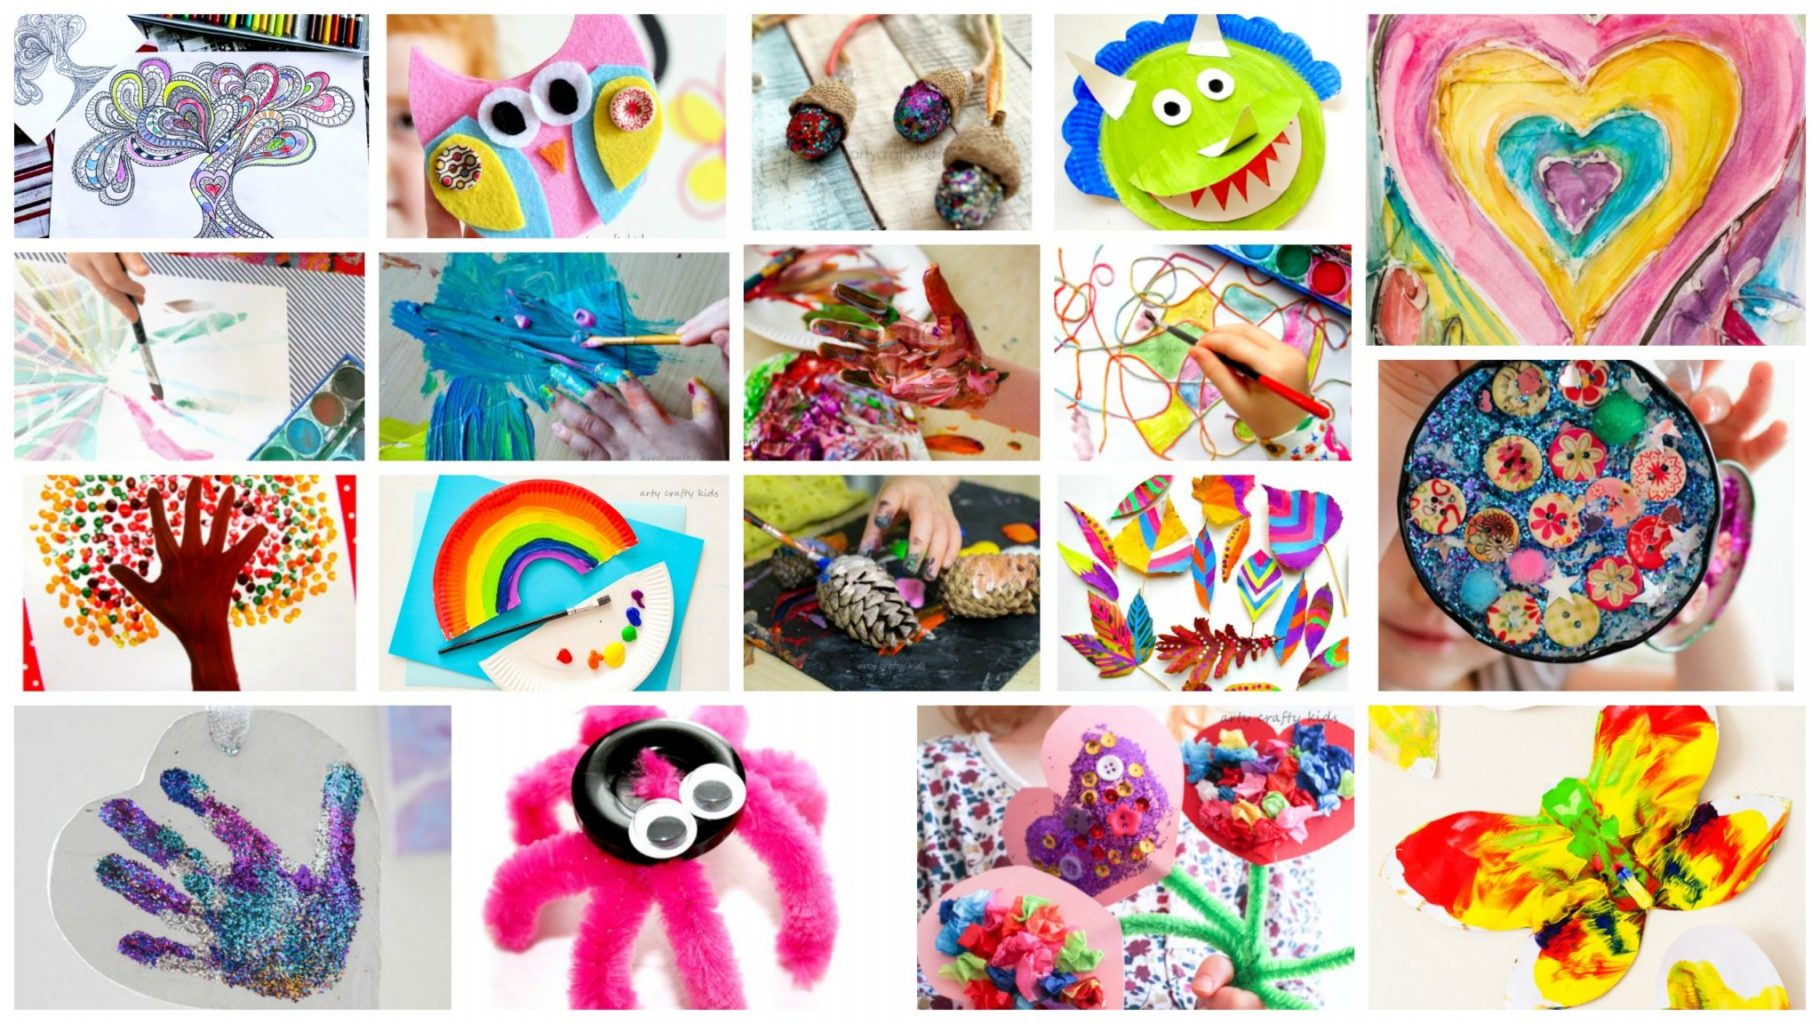 Arty Crafty Kids | About | Art and Craft for Kids